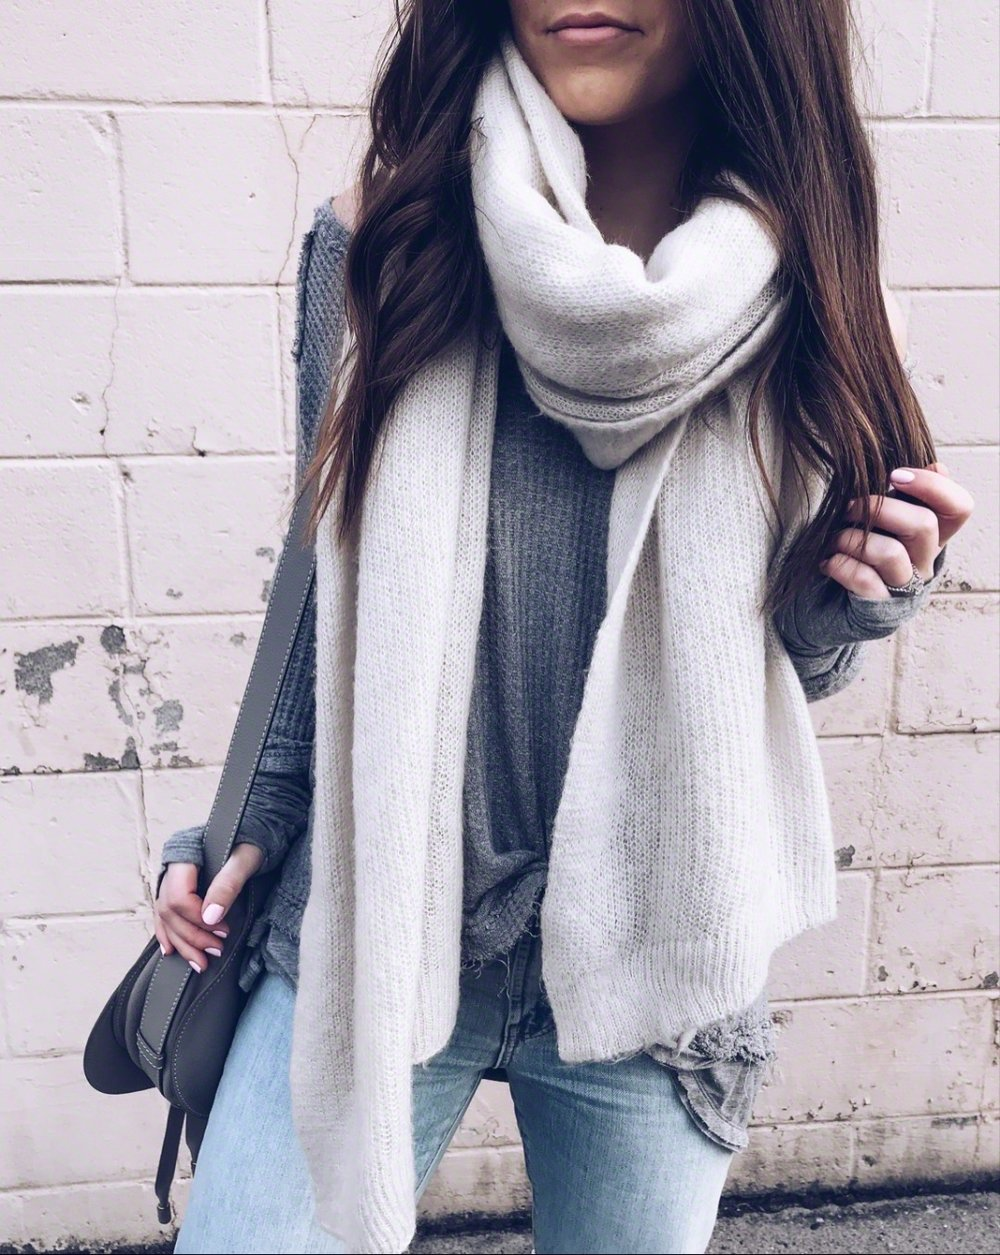 Must Have White Top for Spring | Pine Barren Beauty | winter outfit idea, winter layers, cozy outfit idea, cozy vibes, free people scarf, free people thermal, light wash denim, chloe bag